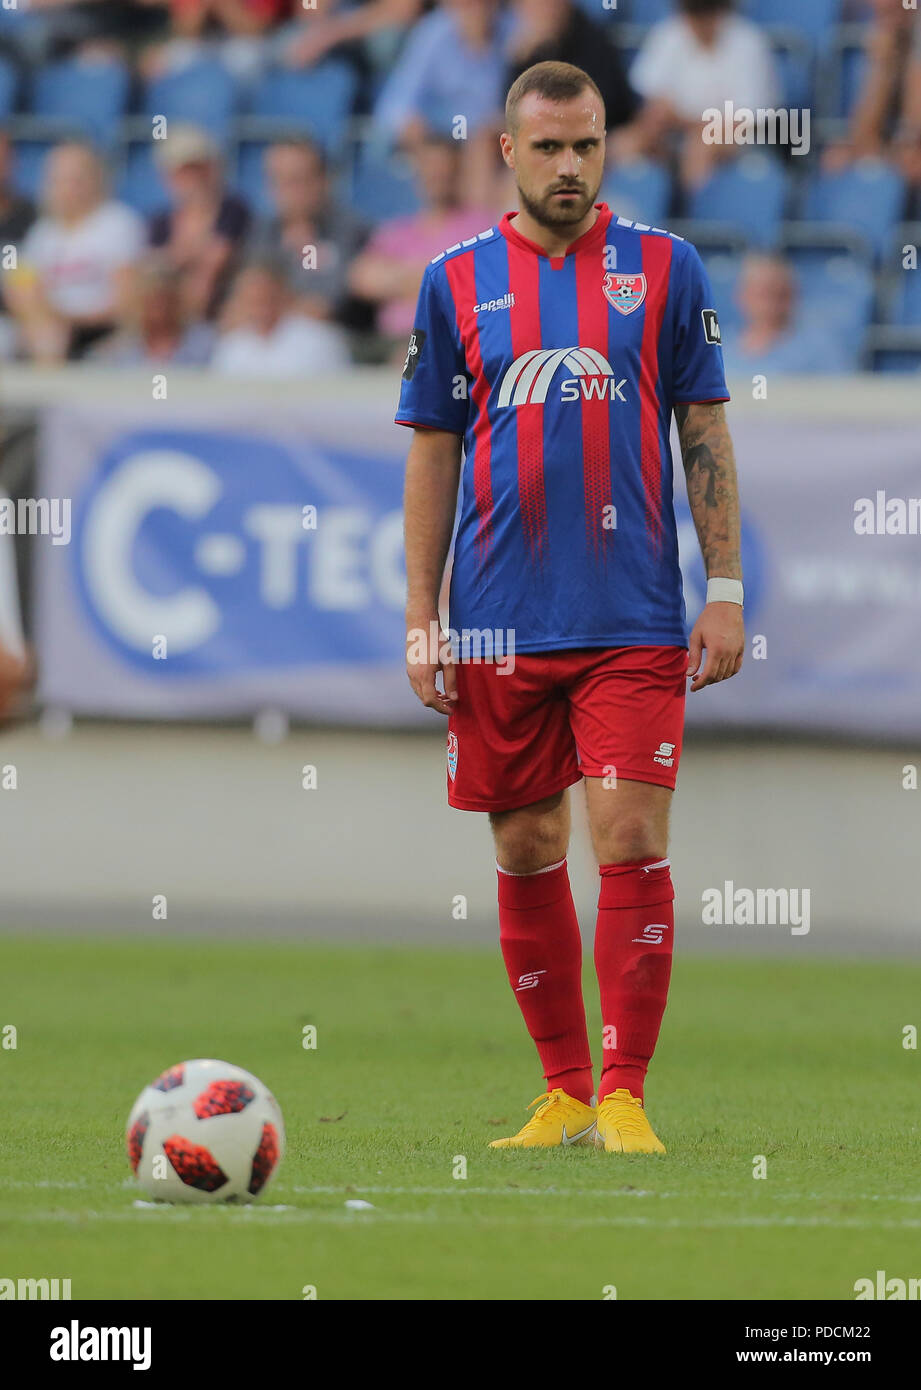 Duisburg, Germany. 08th Aug, 2018. Duisburg, Germany August 8 2018, 3rd league matchday 3, KFC Uerdingen 05 vs SV Meppen: Maximilian Beister (KFC) schaut. Credit: Juergen Schwarz/Alamy Live News Stock Photo